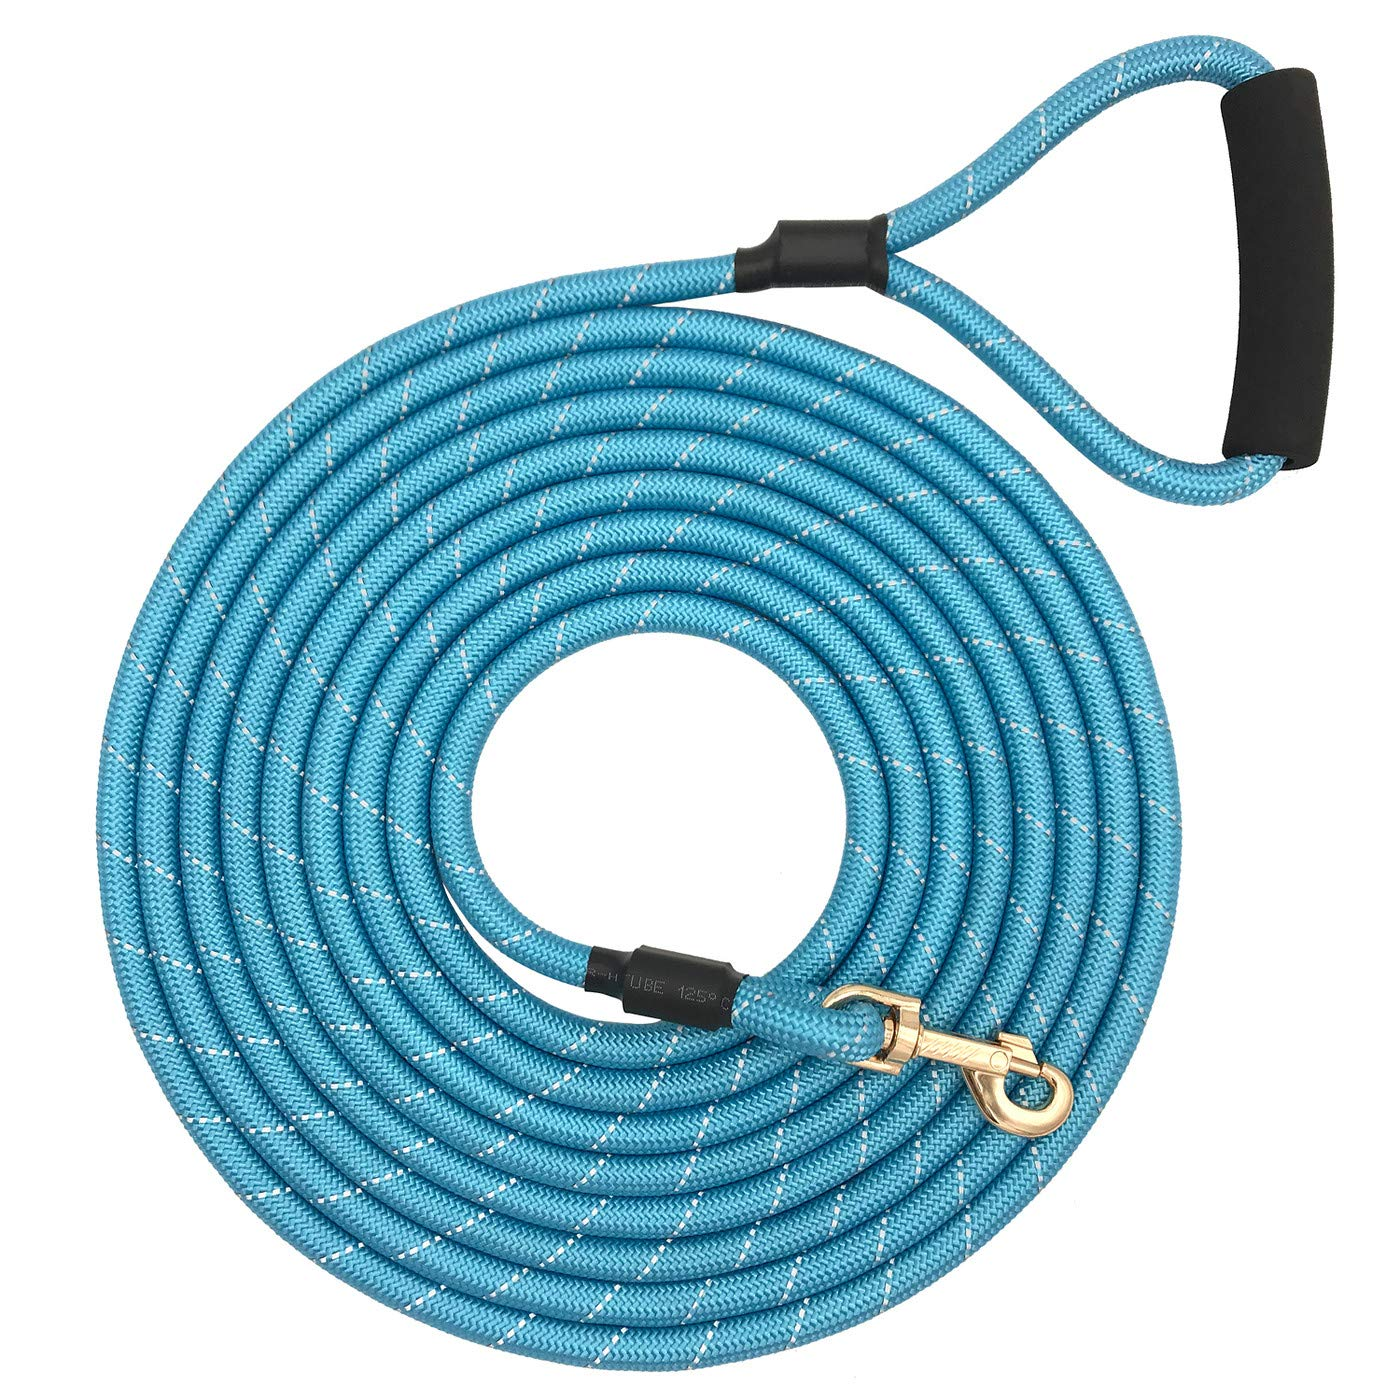 Shorven Nylon Strong Dog Rope Lead Reflective Training Dog Leash with Soft Handle 8-20 FT Long Aqua Blue (Dia:0.5'' 20FT) by Shorven